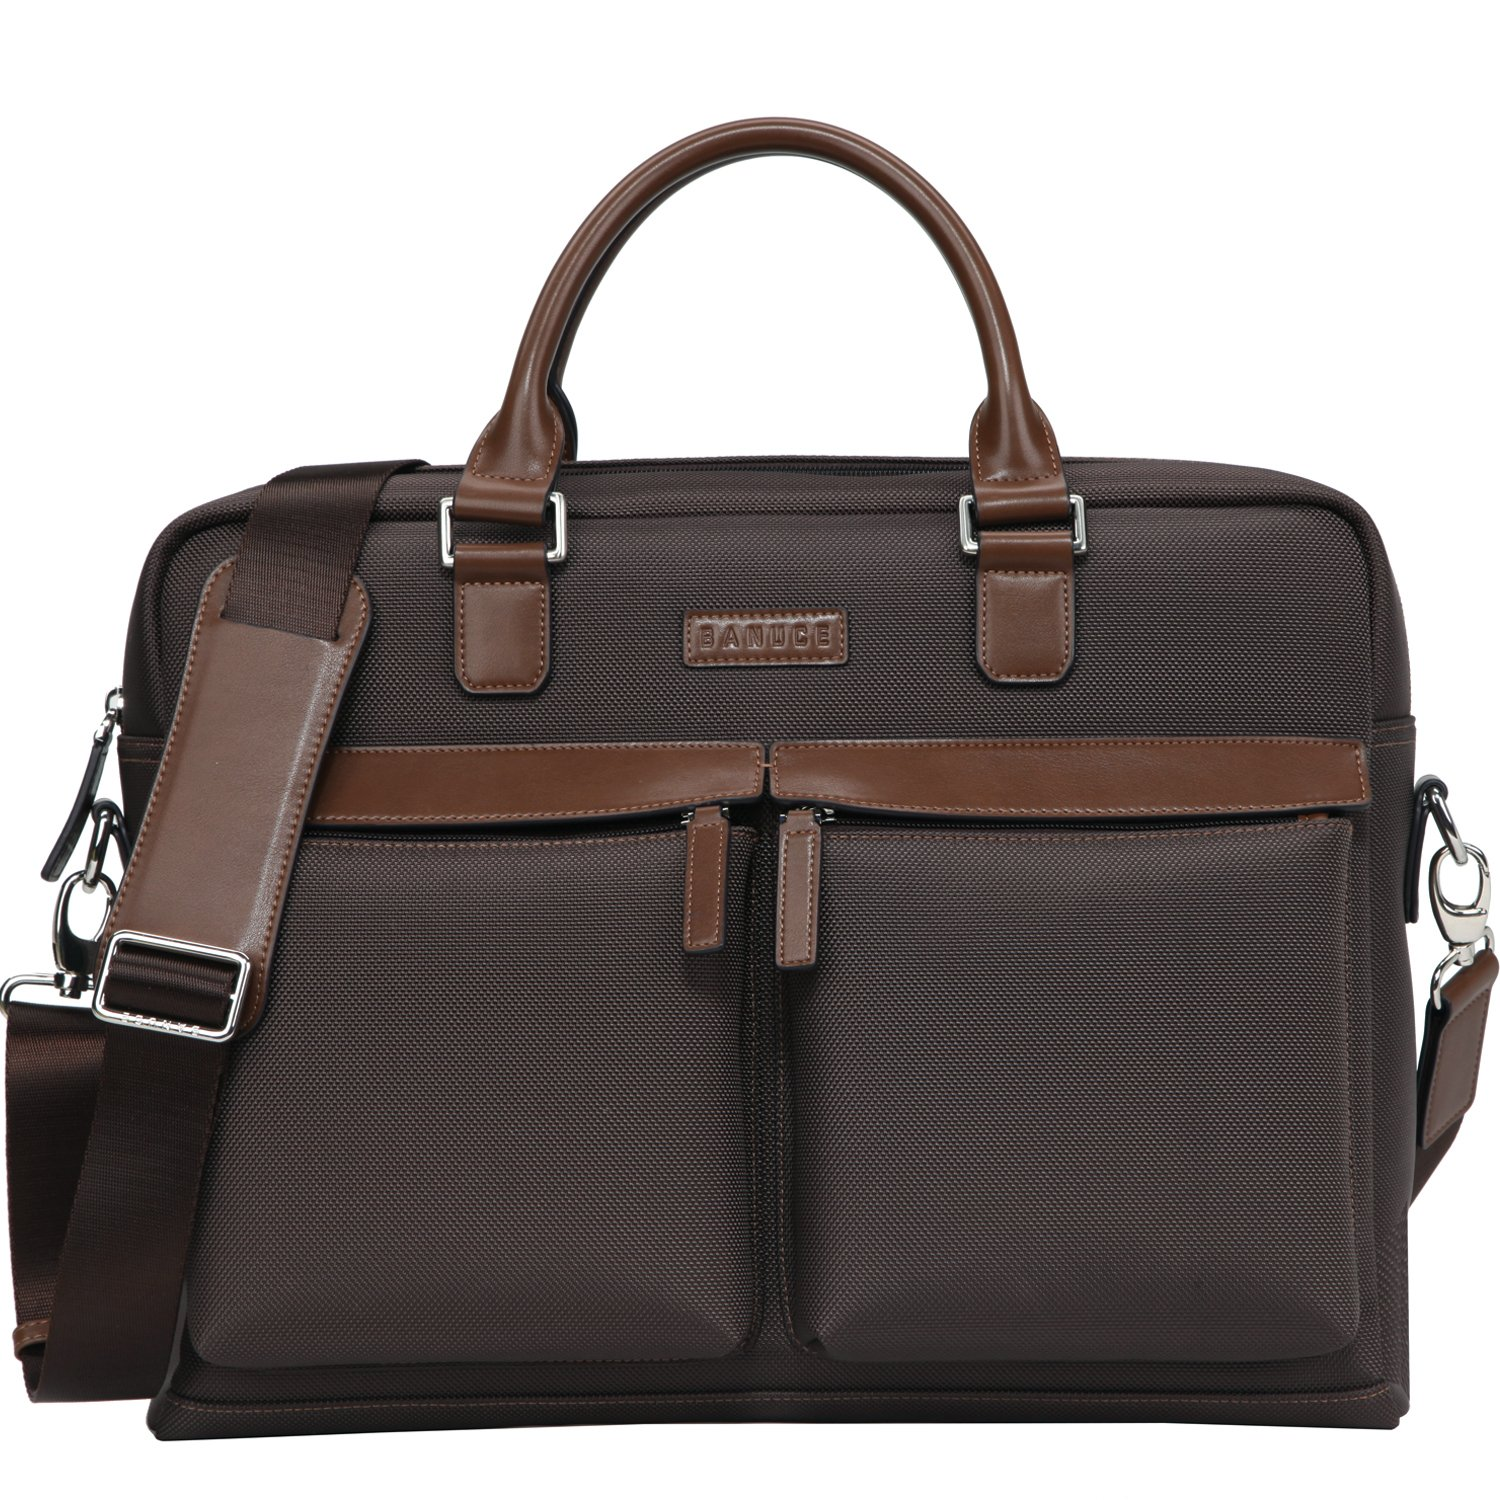 Banuce Men's Waterproof Nylon Faux Leather Briefcase Business 2 way Tote Shoulder Messenger 14 inch Laptop Bag Brown Ront LDXCXBM134-DBN